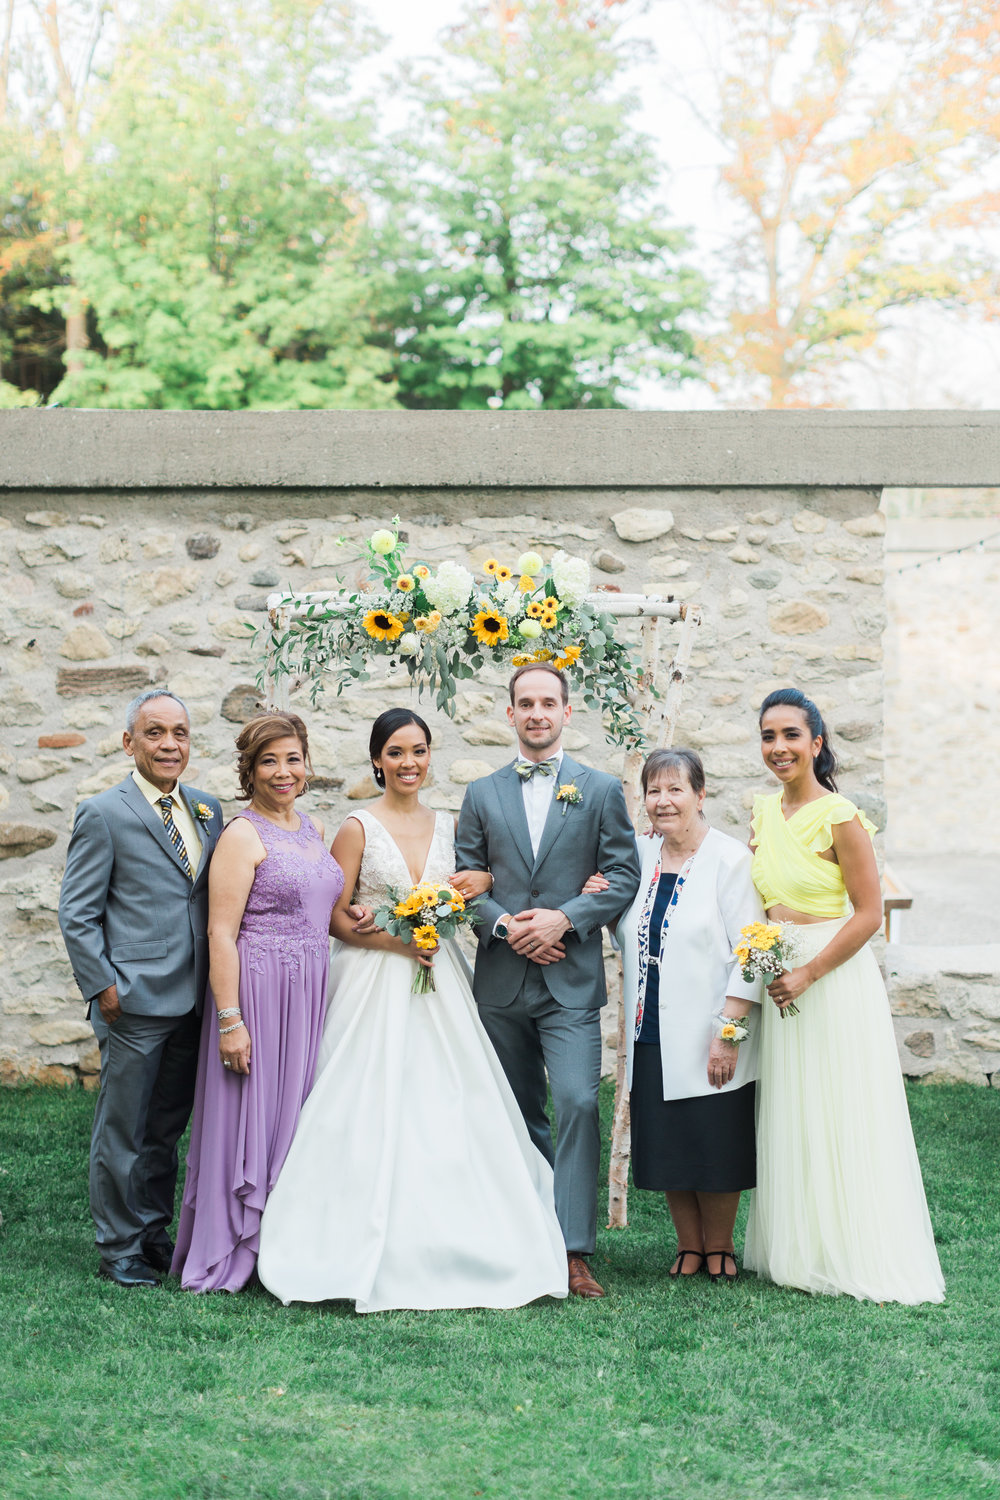 Alton Mills Wedding - Ceremony-91.jpg